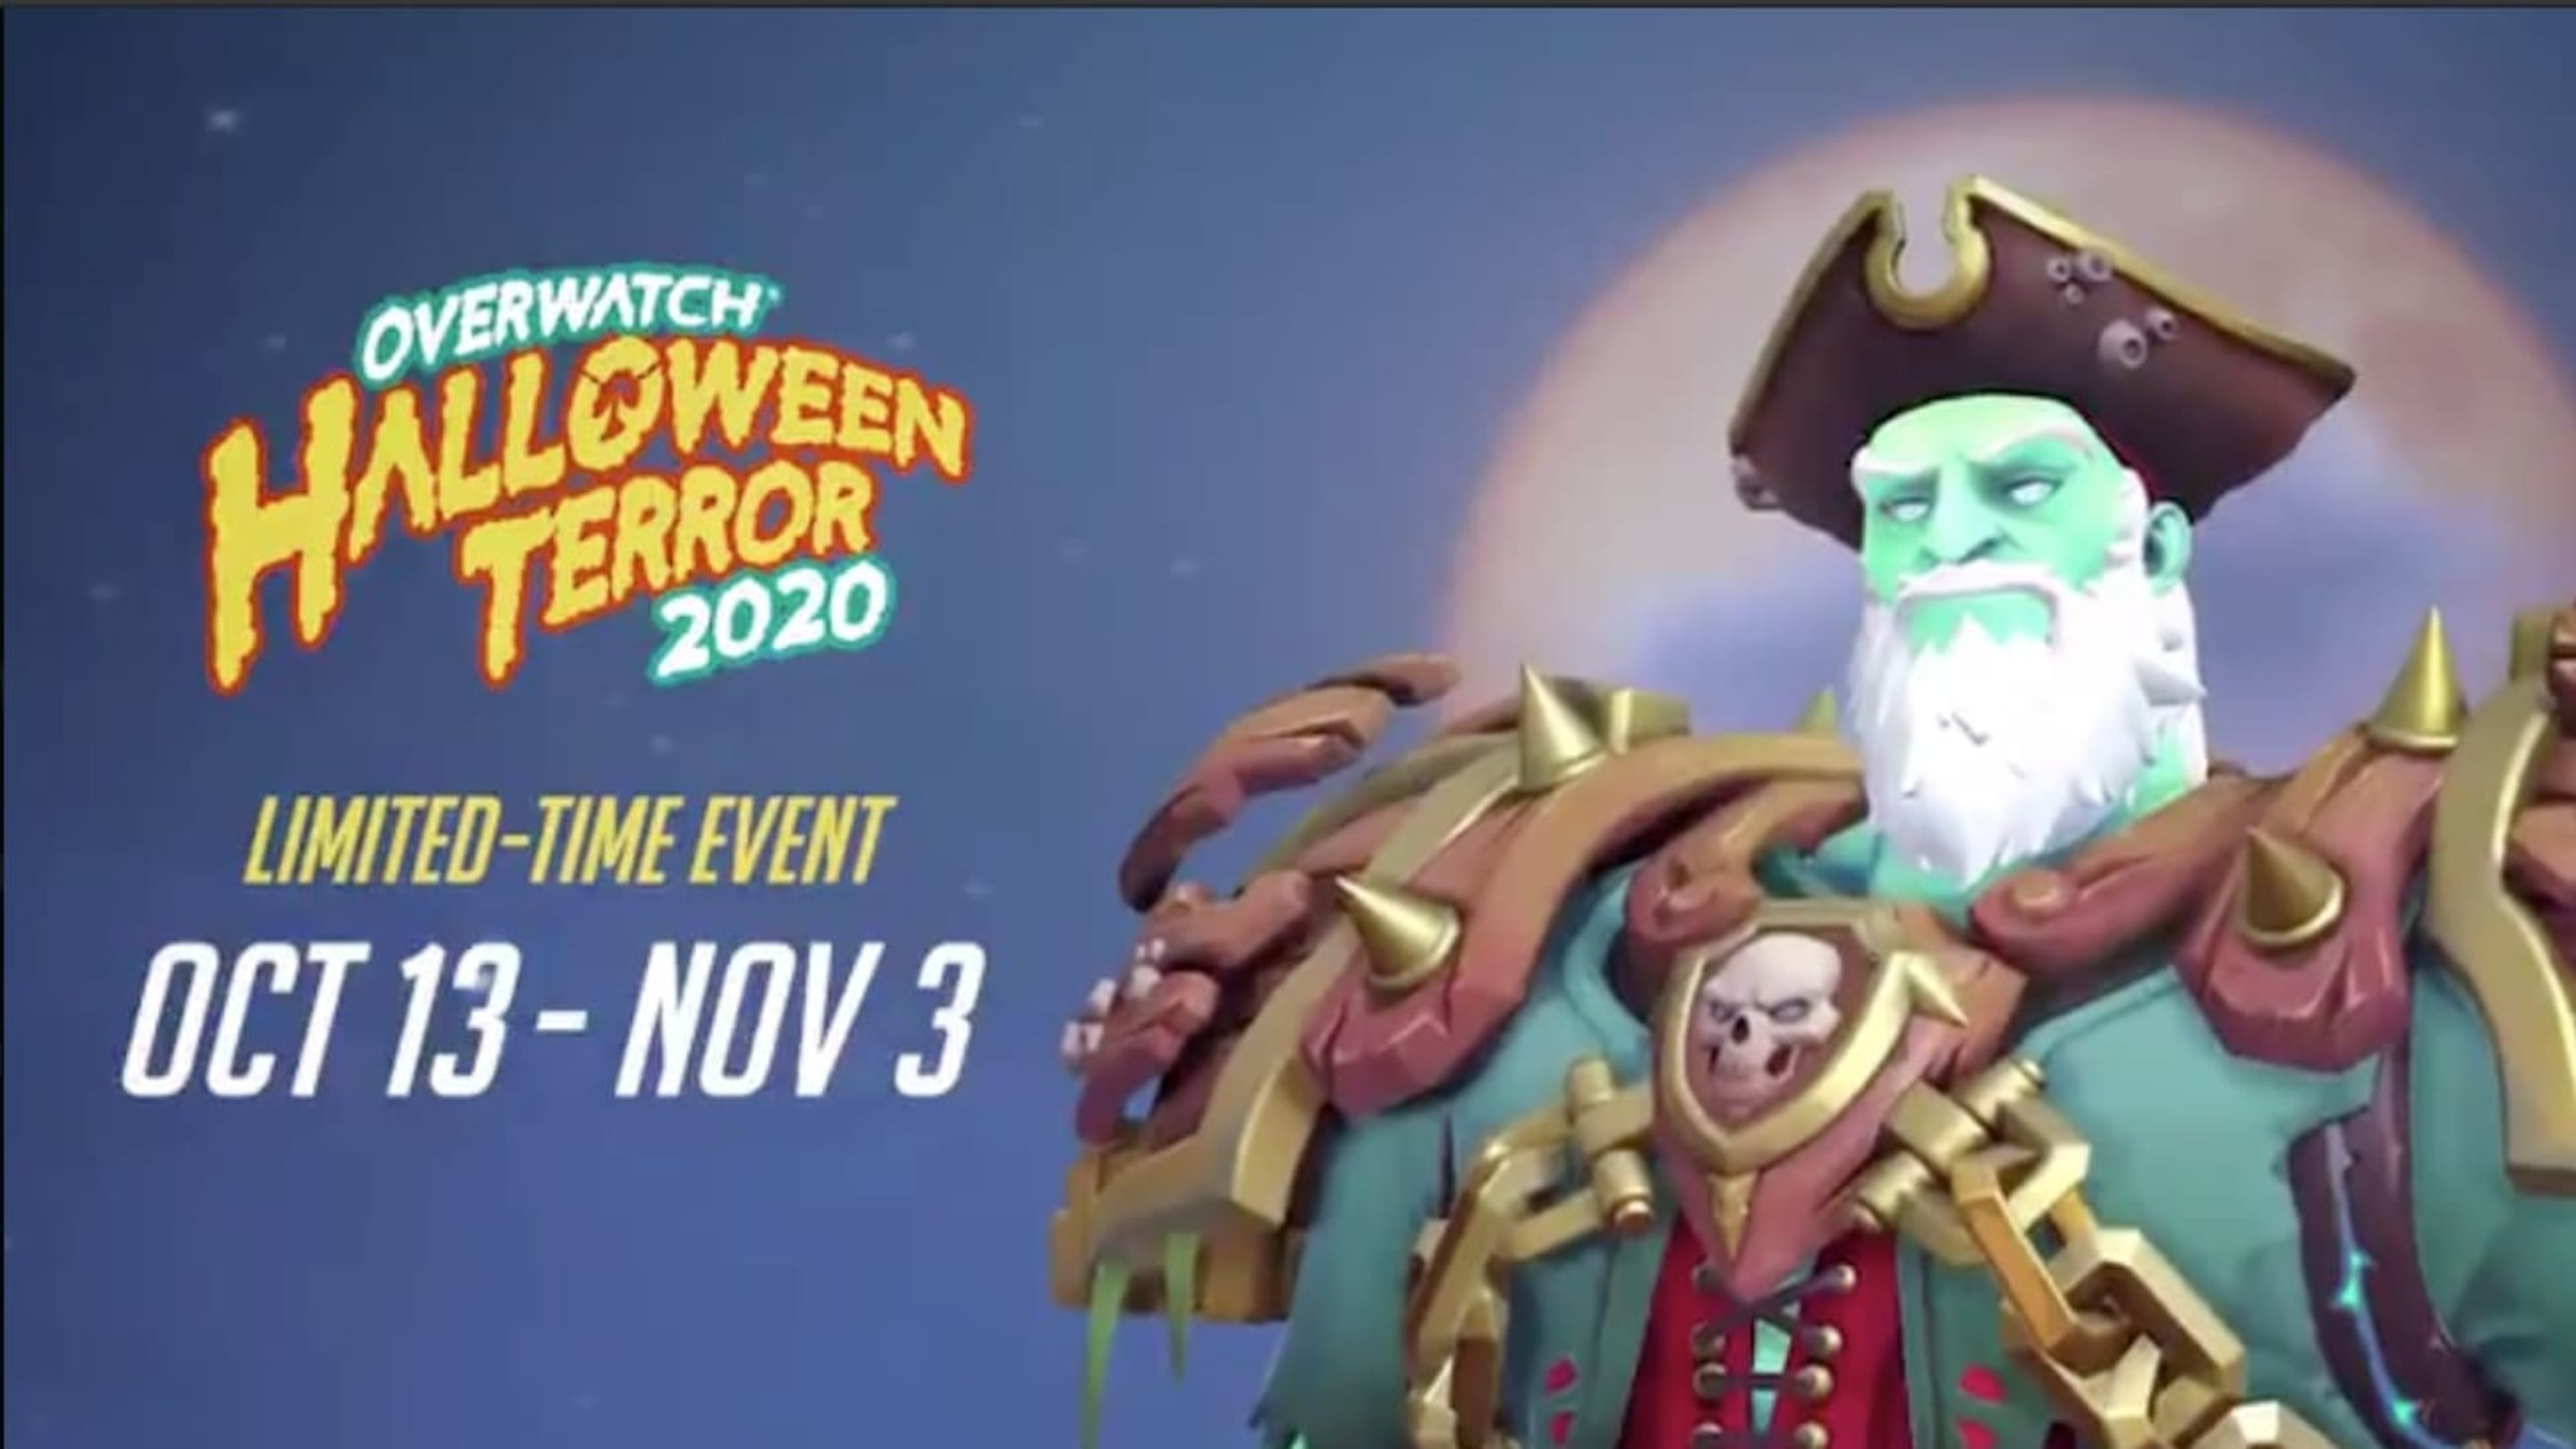 Fastest Exp Overwatch 2020 Halloween 🎮 Flying Dutchman Sigma Skin Revealed for Overwatch Halloween